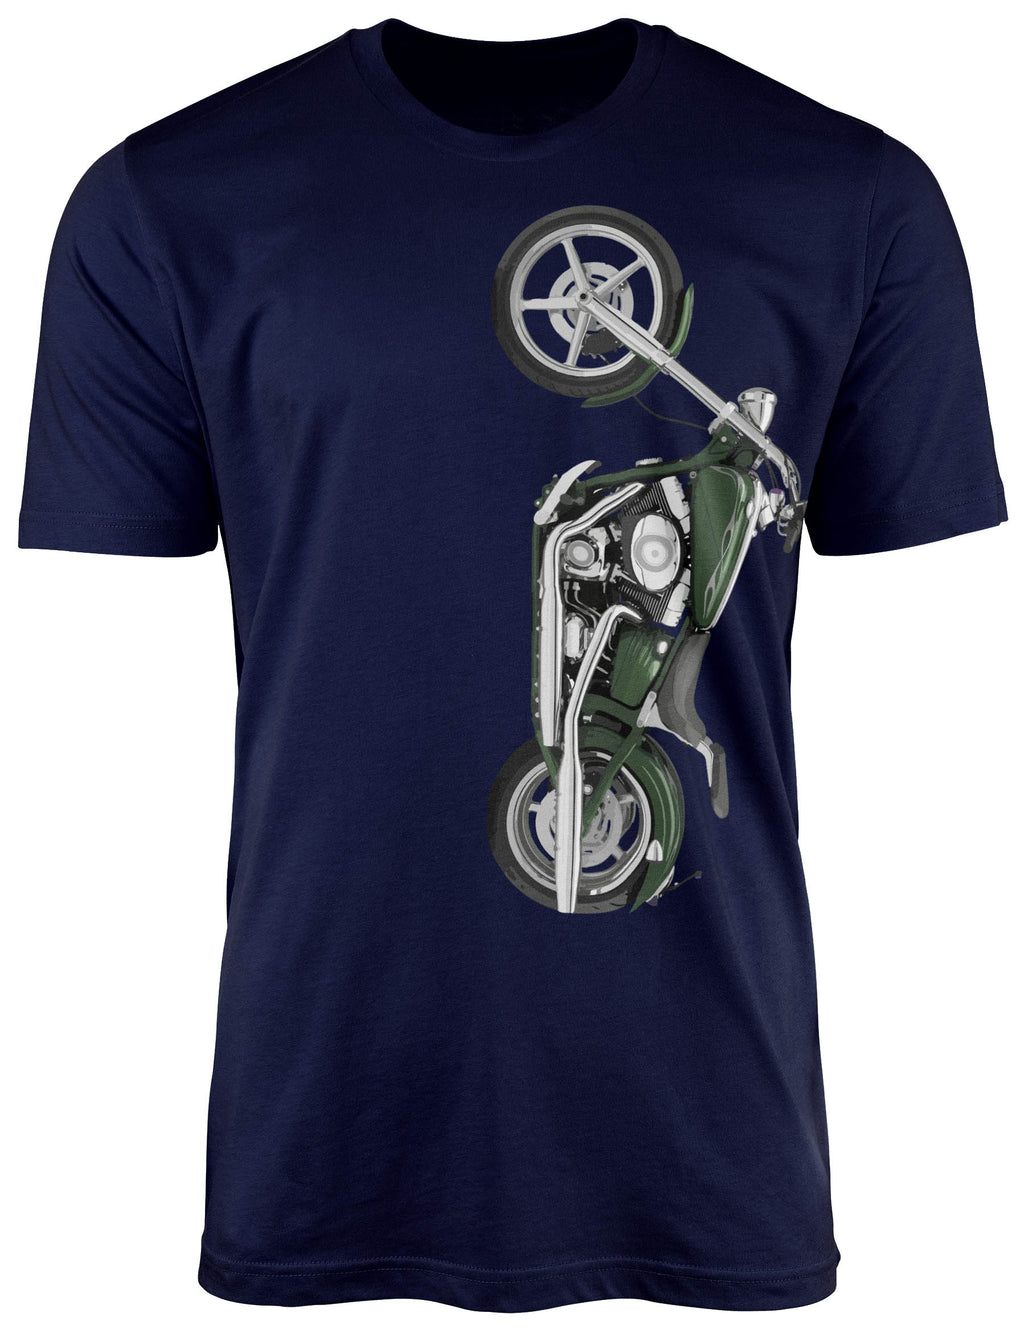 CHOPPER | T-Shirt - Schrauberking